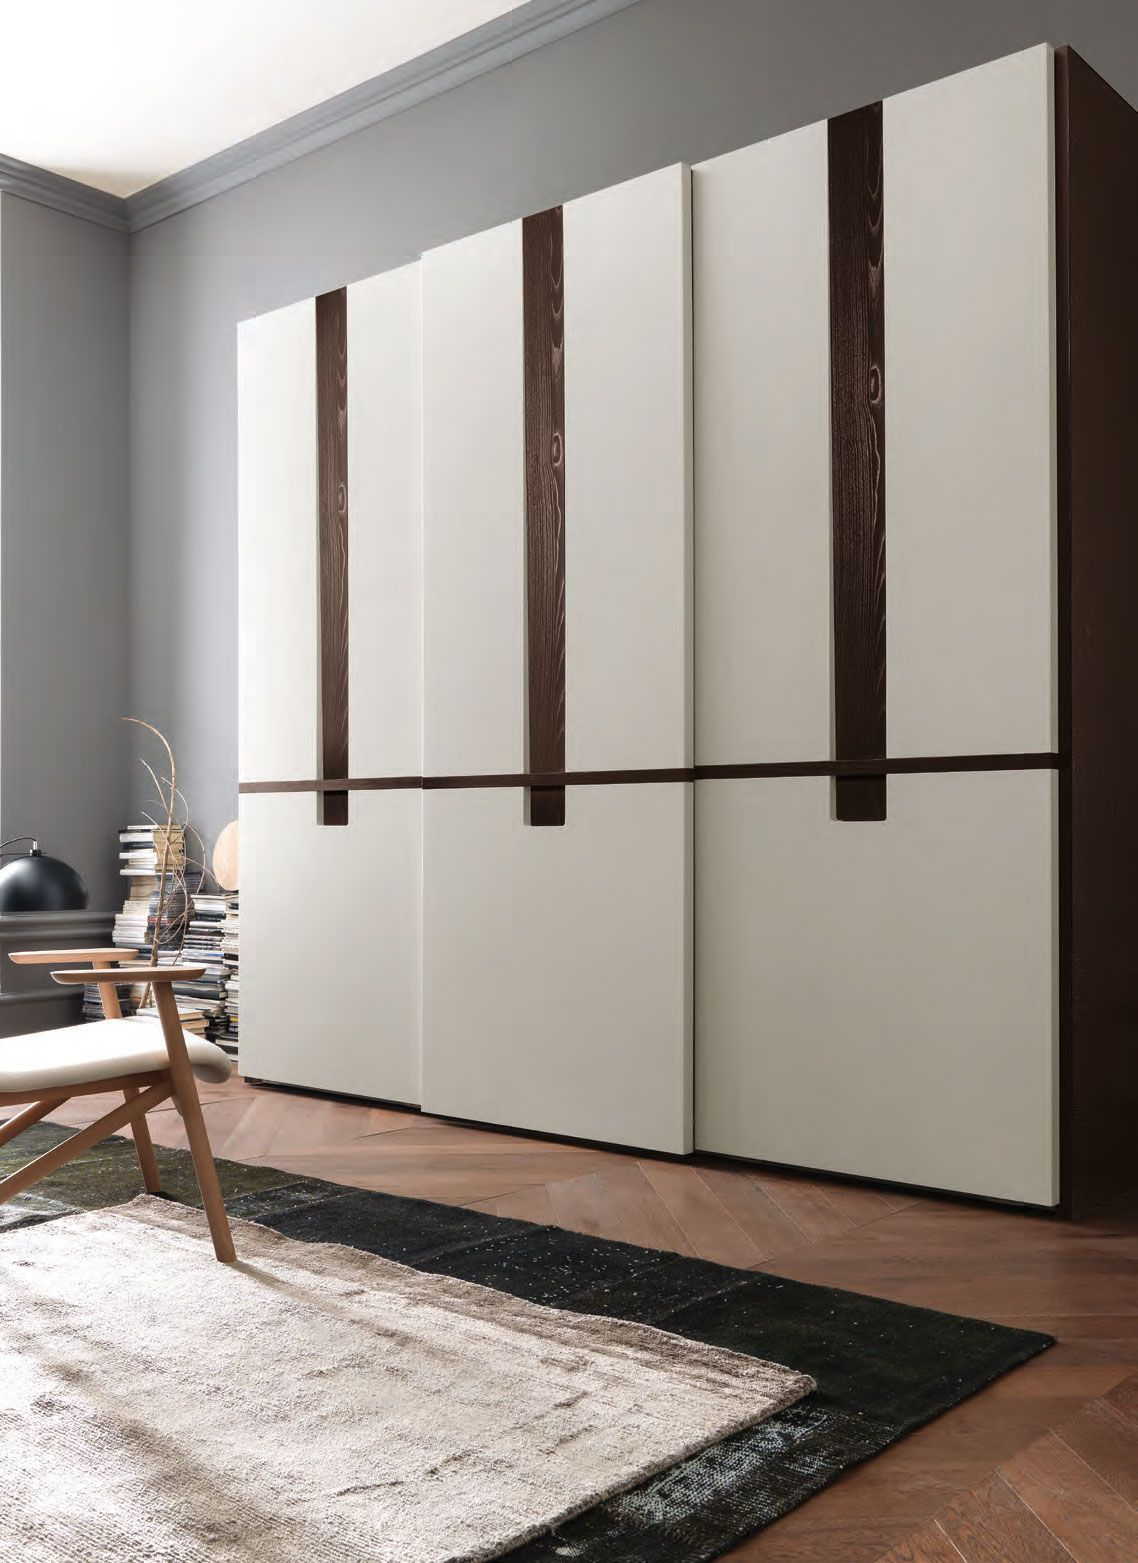 35 modern wardrobe furniture designs wardrobe furniture modern wardrobe and comebacks Home interior wardrobe design